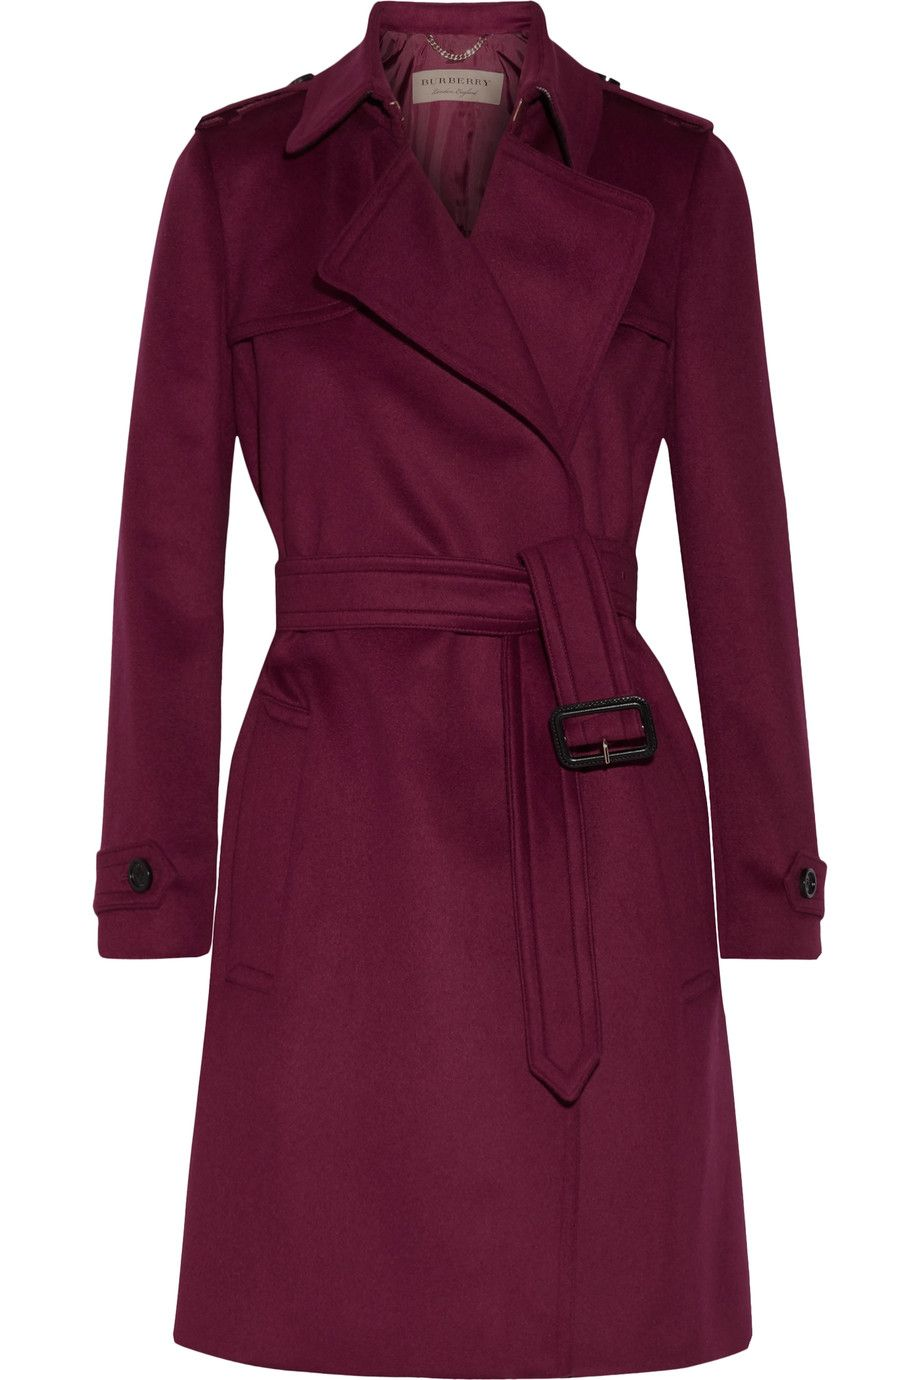 9fe321b716 Burberry - Tempsford cashmere trench coat | Fashion Lust | Burberry ...